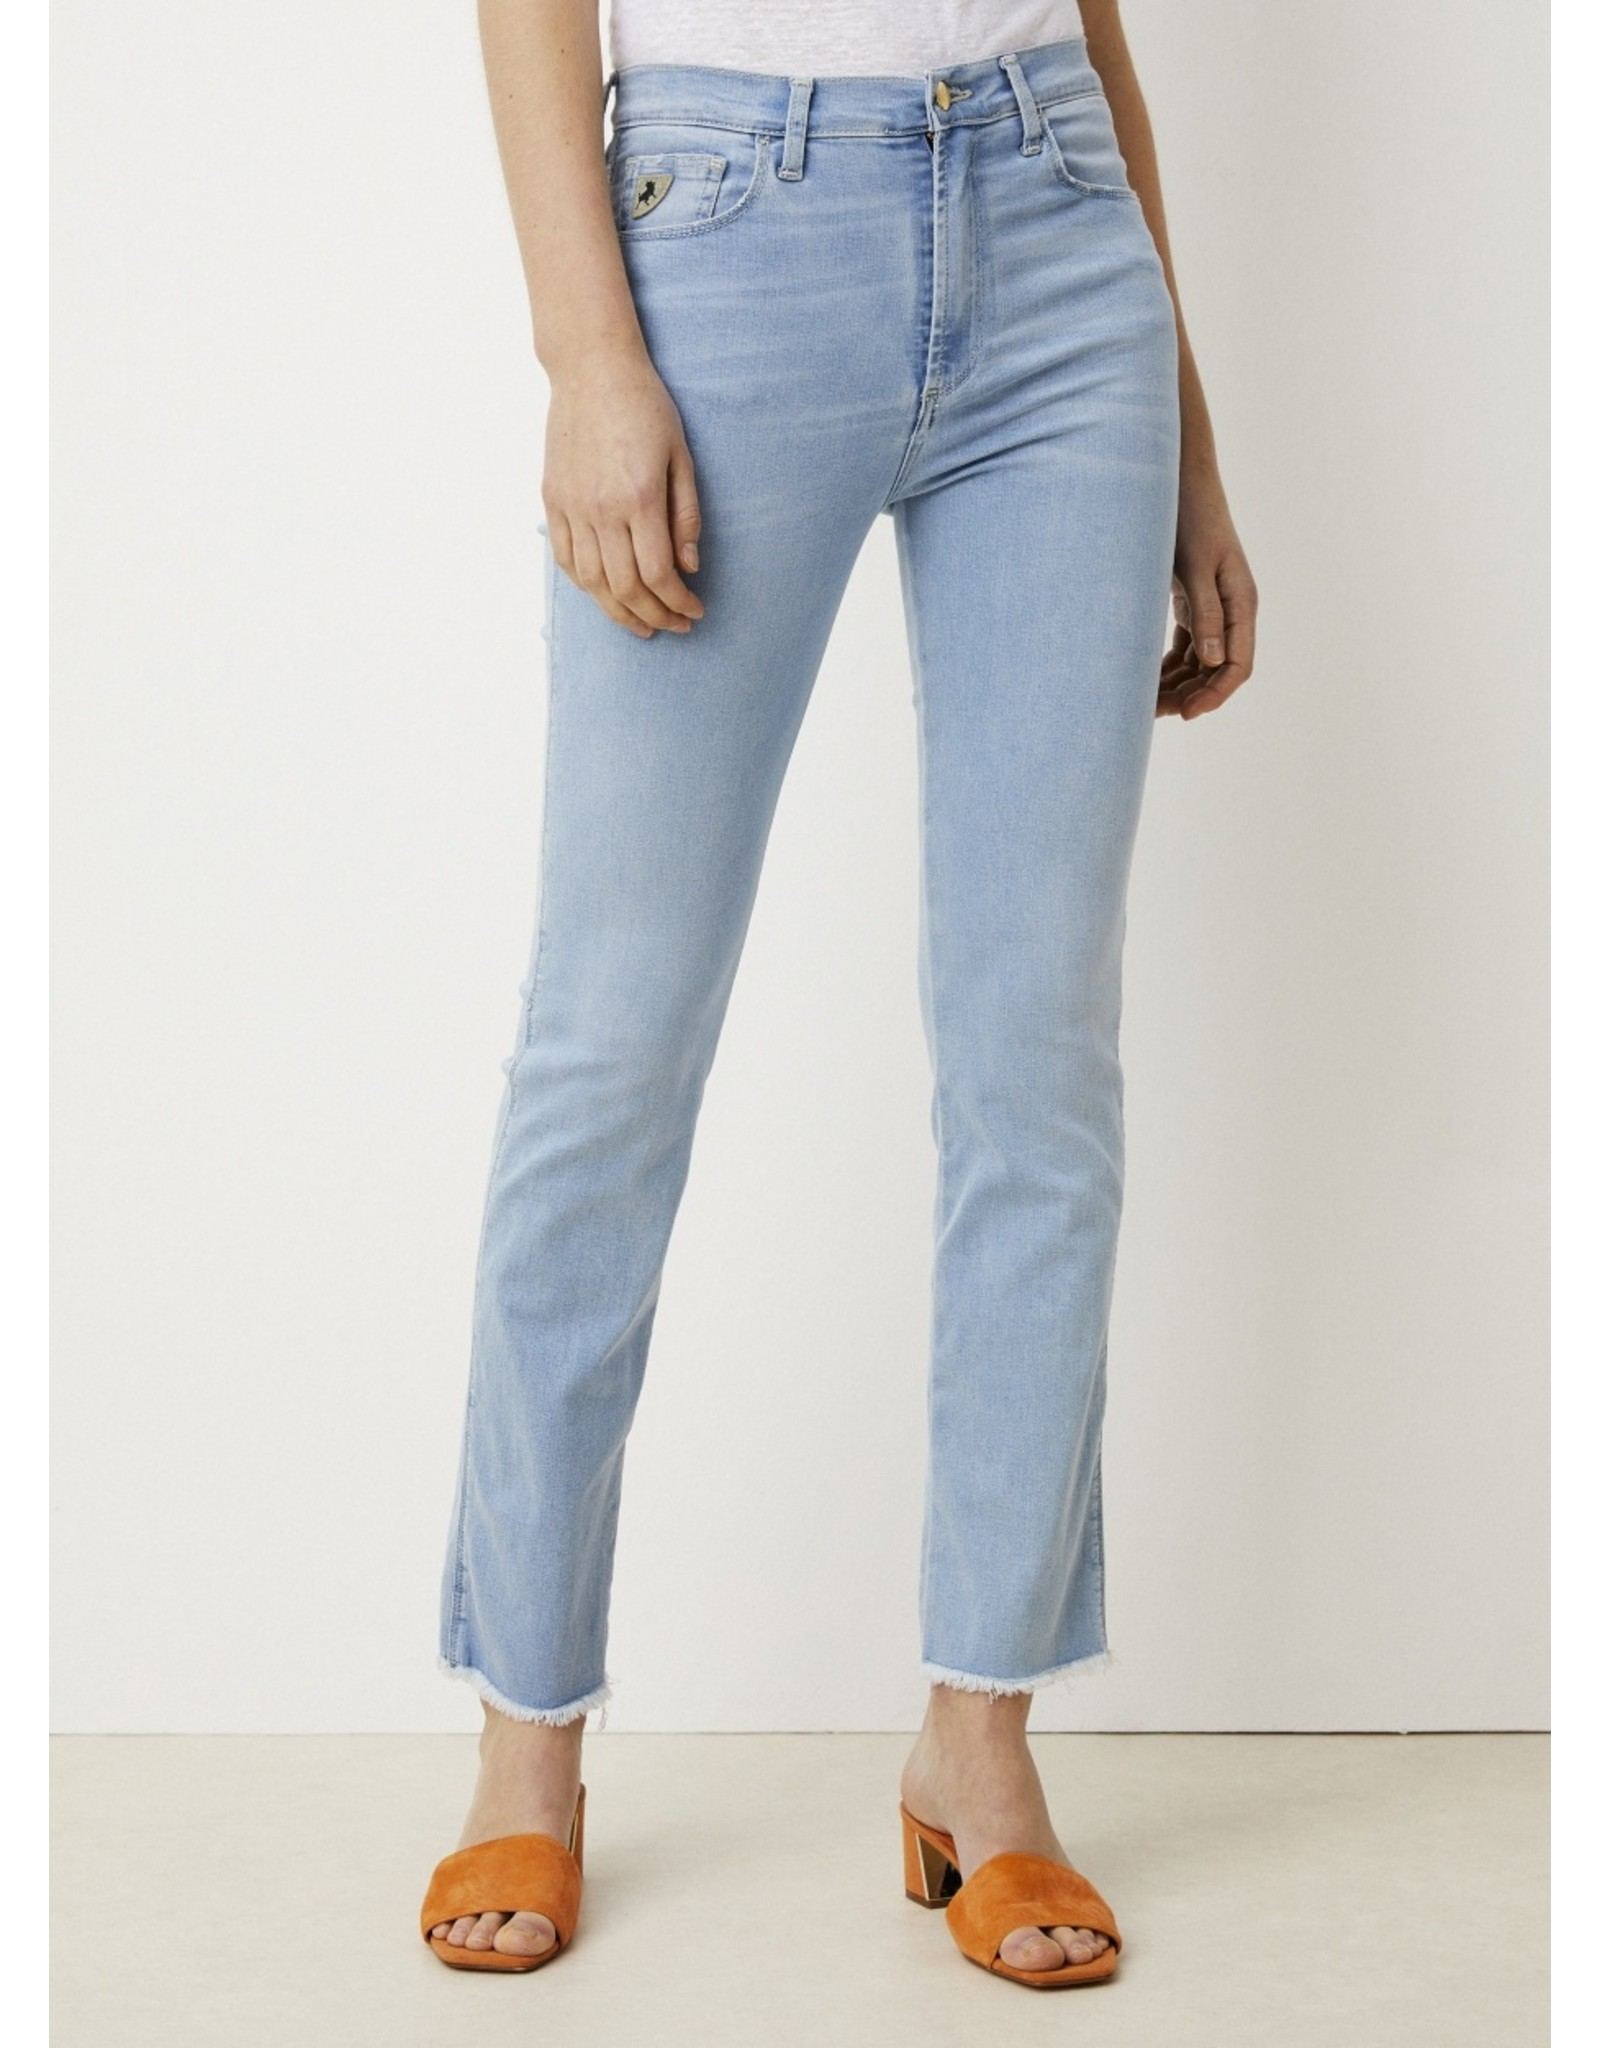 LOIS JEANS REBECA LIGHT STONE